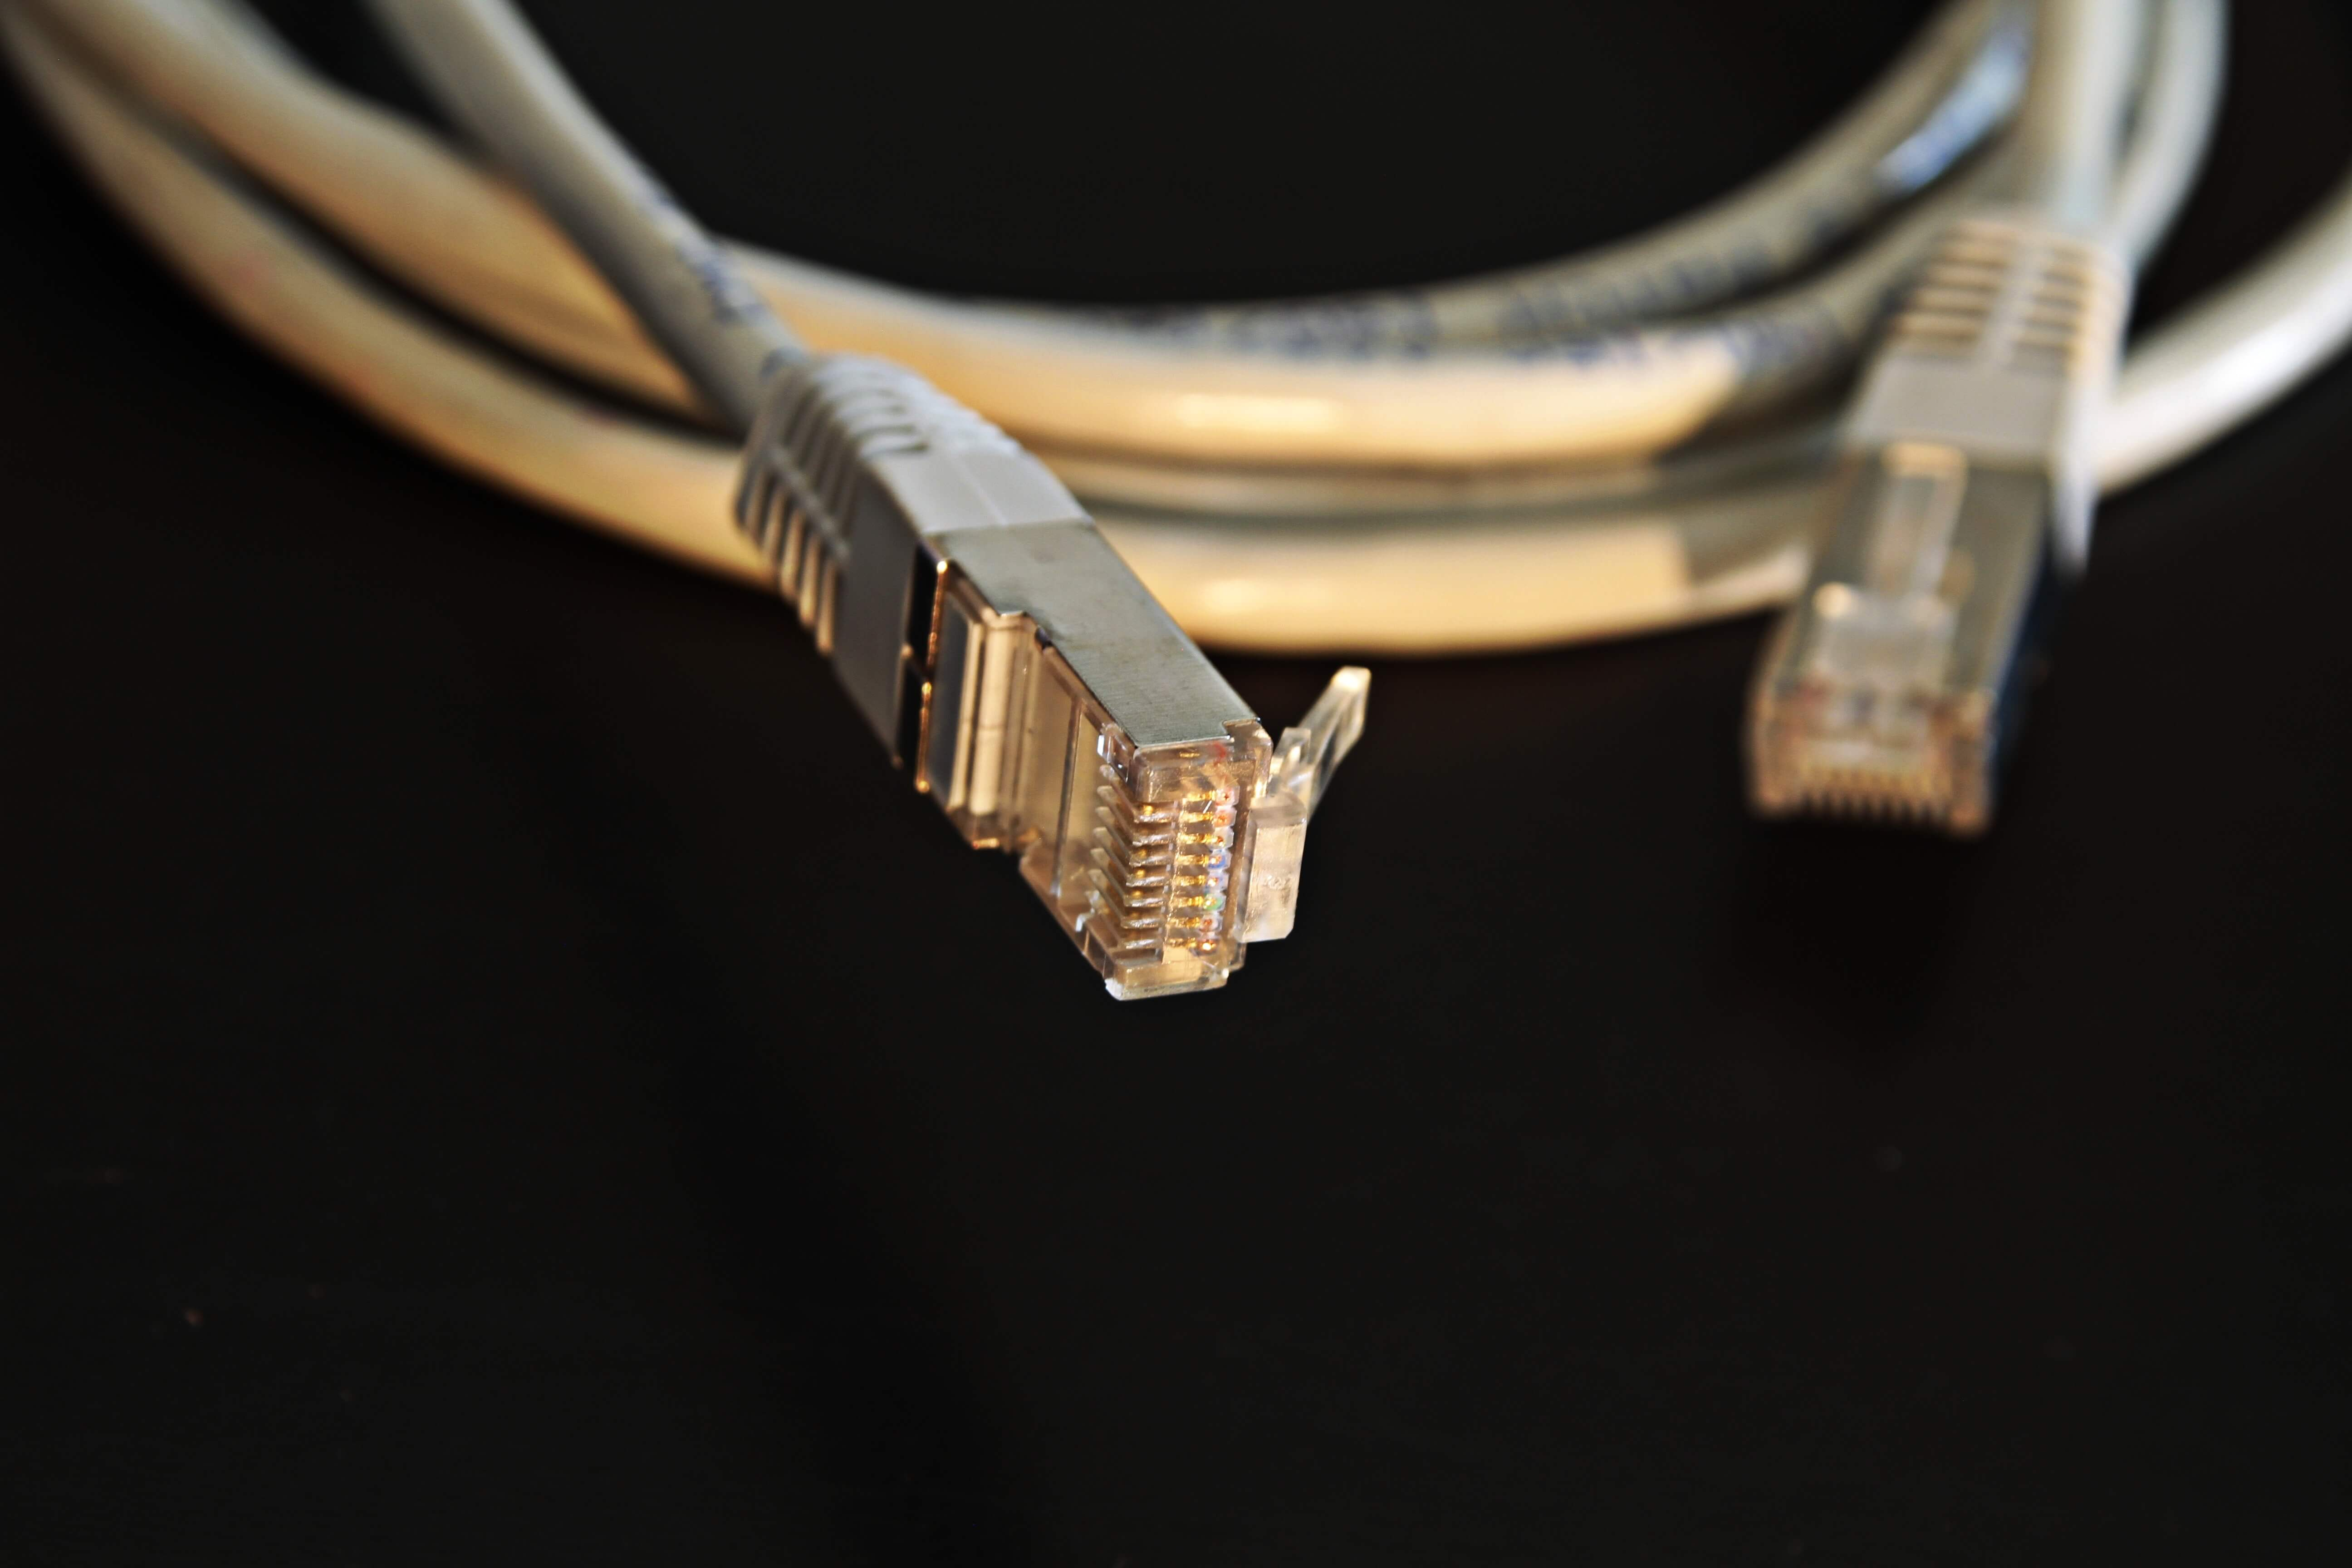 close-up-cord-ethernet-cable-163047_1.jpg